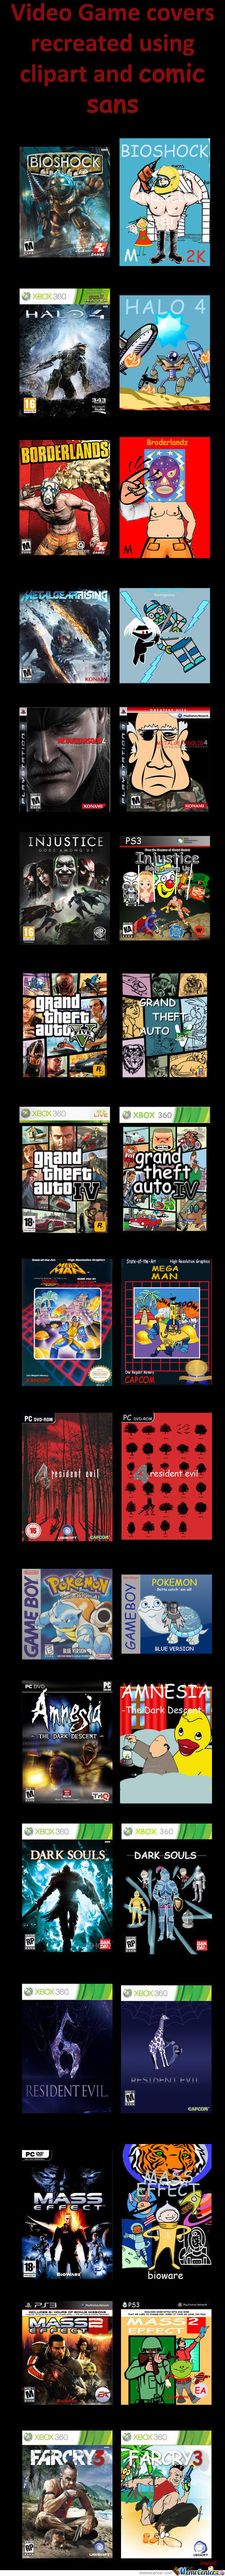 Recreated Video Game Covers